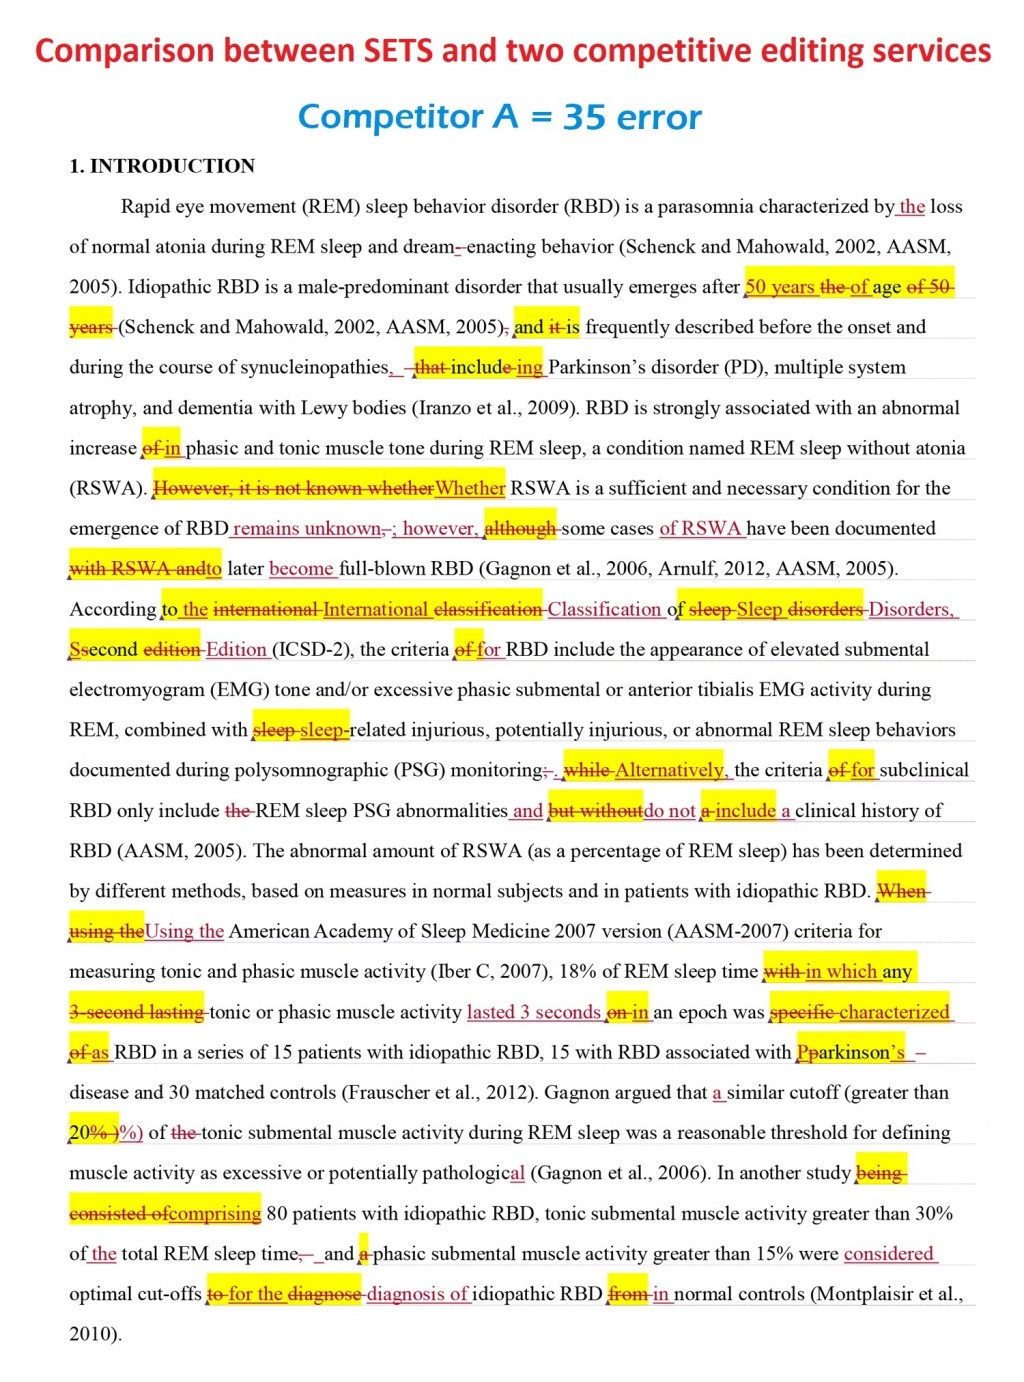 011 Research Paper Editor 001 Big Breathtaking Free Professional Editors Software Large